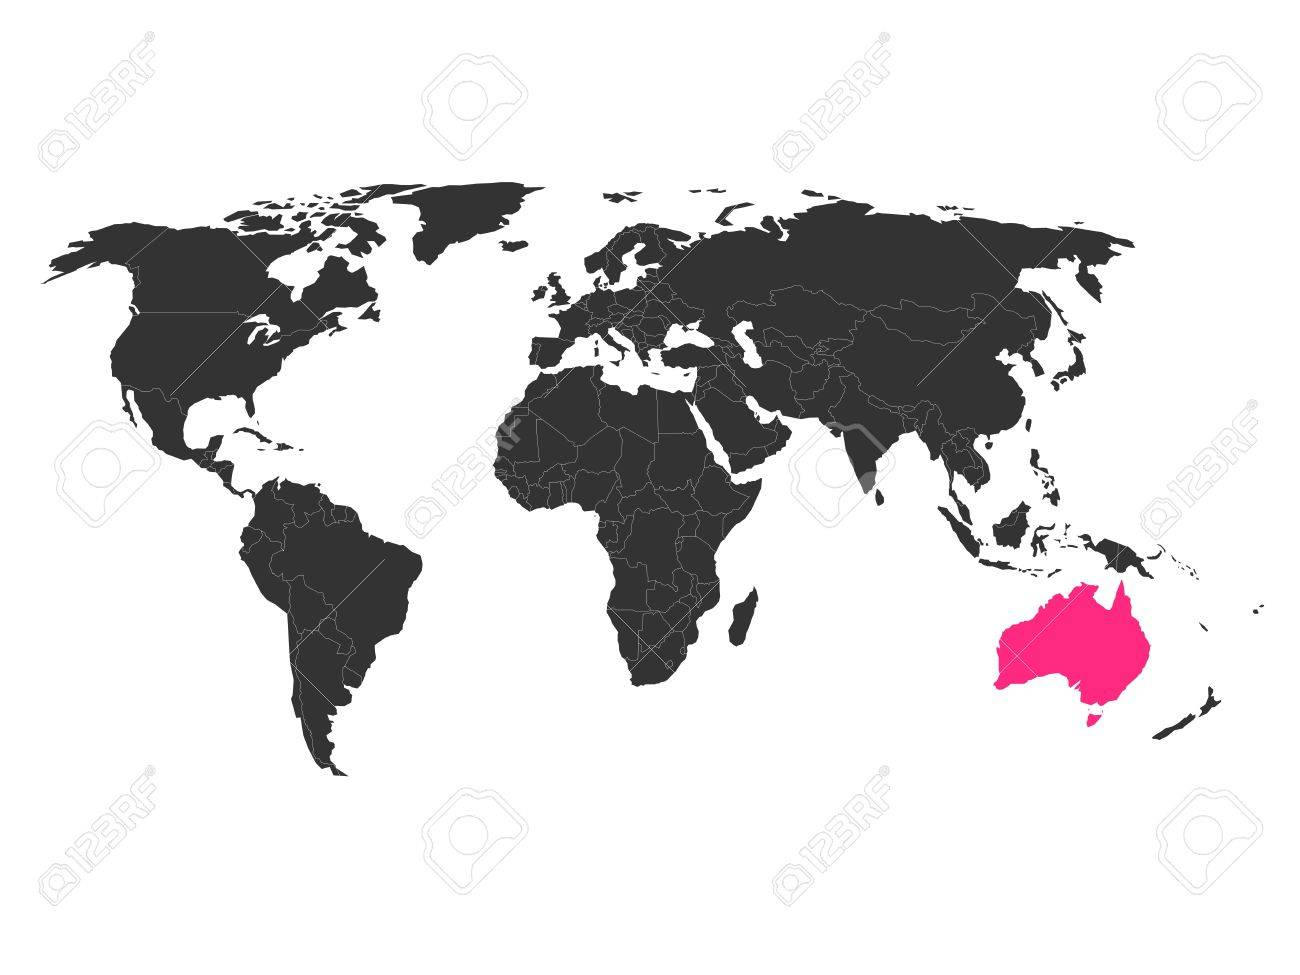 World Map With Highlighted Australia  Simlified Political Vector     Vector   World map with highlighted Australia  Simlified political vector  map in dark grey and pink highlight